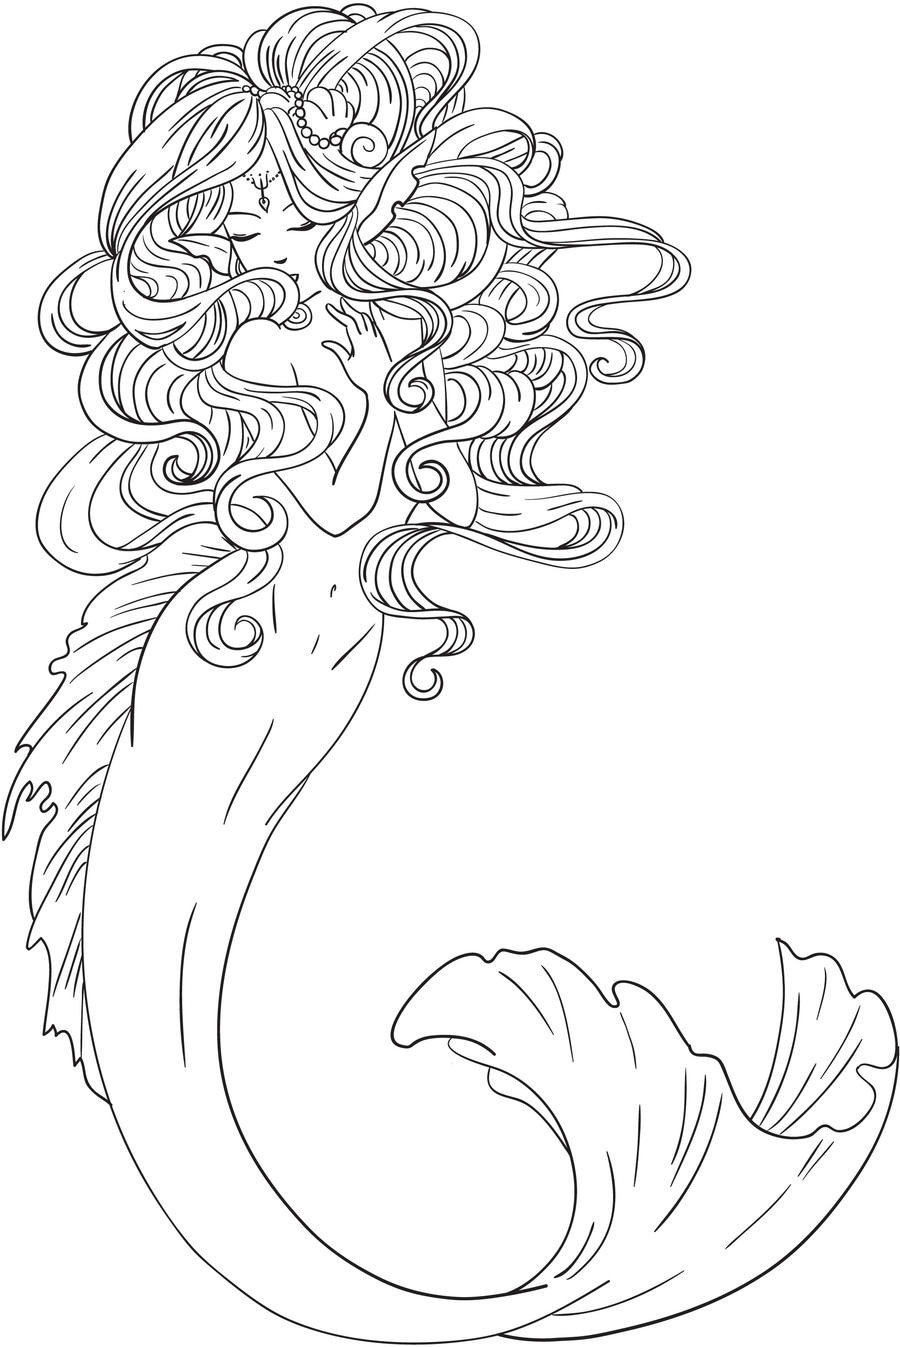 Lineart For Mermaid By ShyniMoonStar On DeviantArt